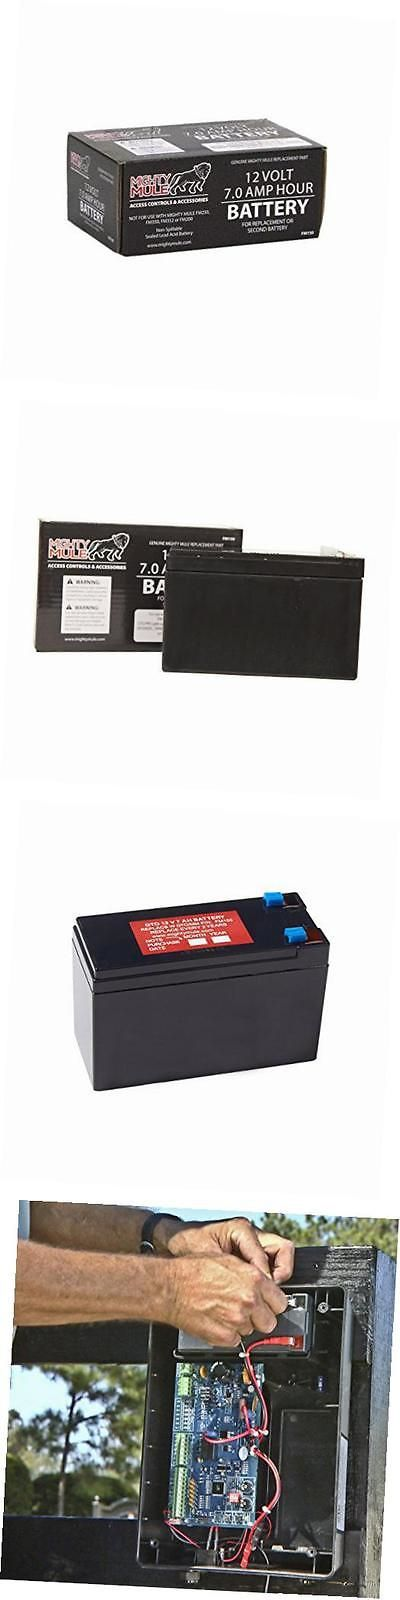 Batteries and Power Accessories: 12-Volt Battery For Automatic Gate Openers (Fm150) -> BUY IT NOW ONLY: $43.78 on eBay!